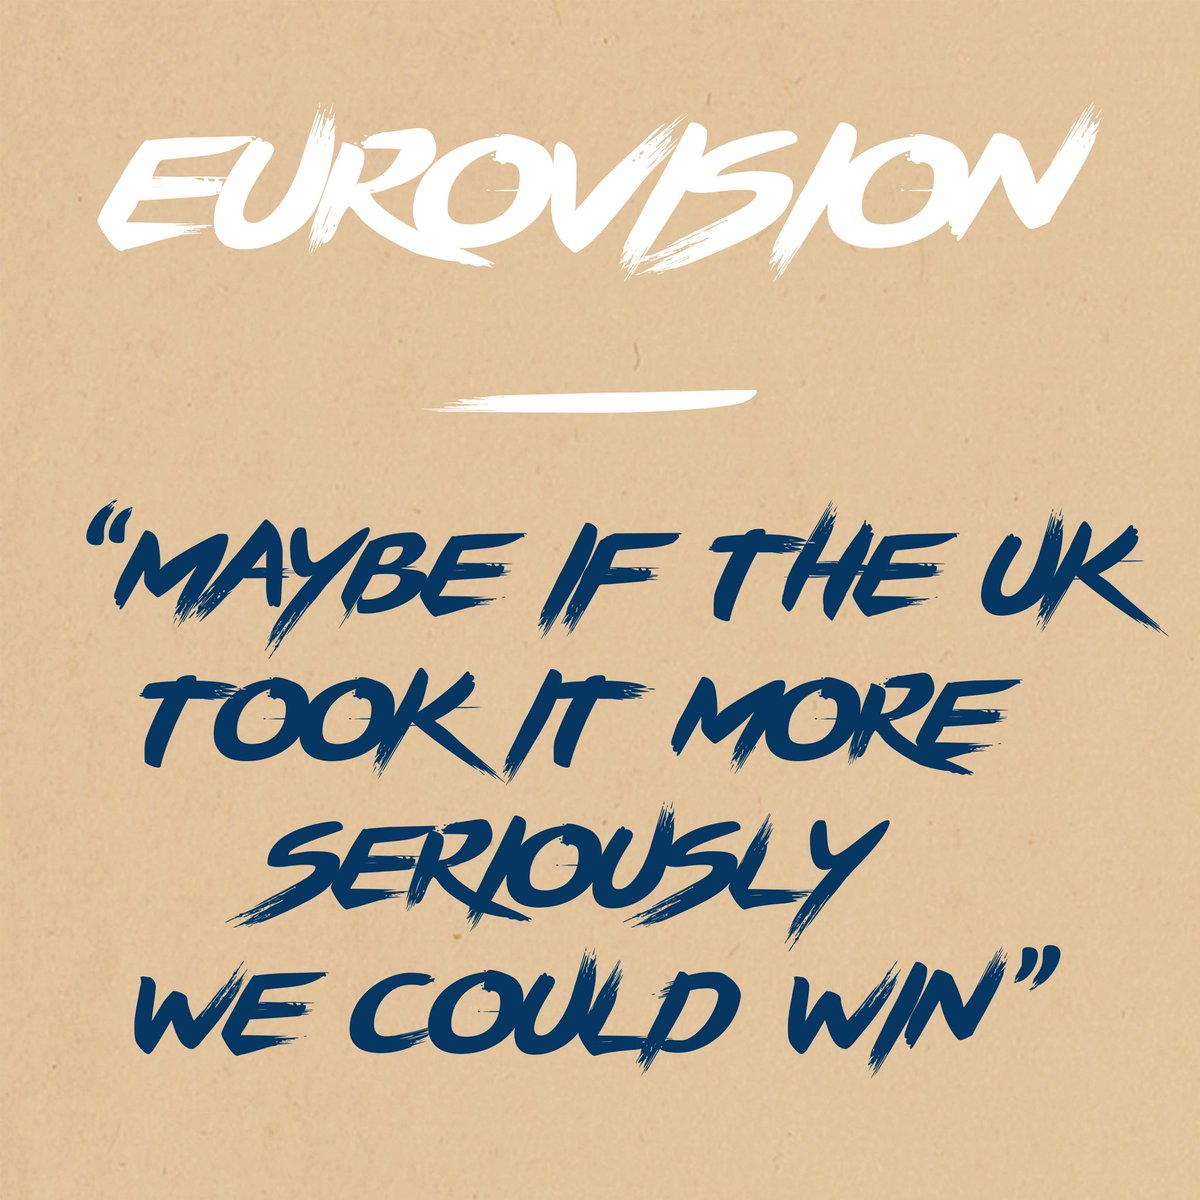 Our Eurovision fever has yet to subside! We have dedicated an episode talking about the event, music, artists and controversies! available on our website http://www.justofflondon.com  and your favourite 'cast app! #eurovision #eurovision2019 #bbceurovision #eurovisionuk